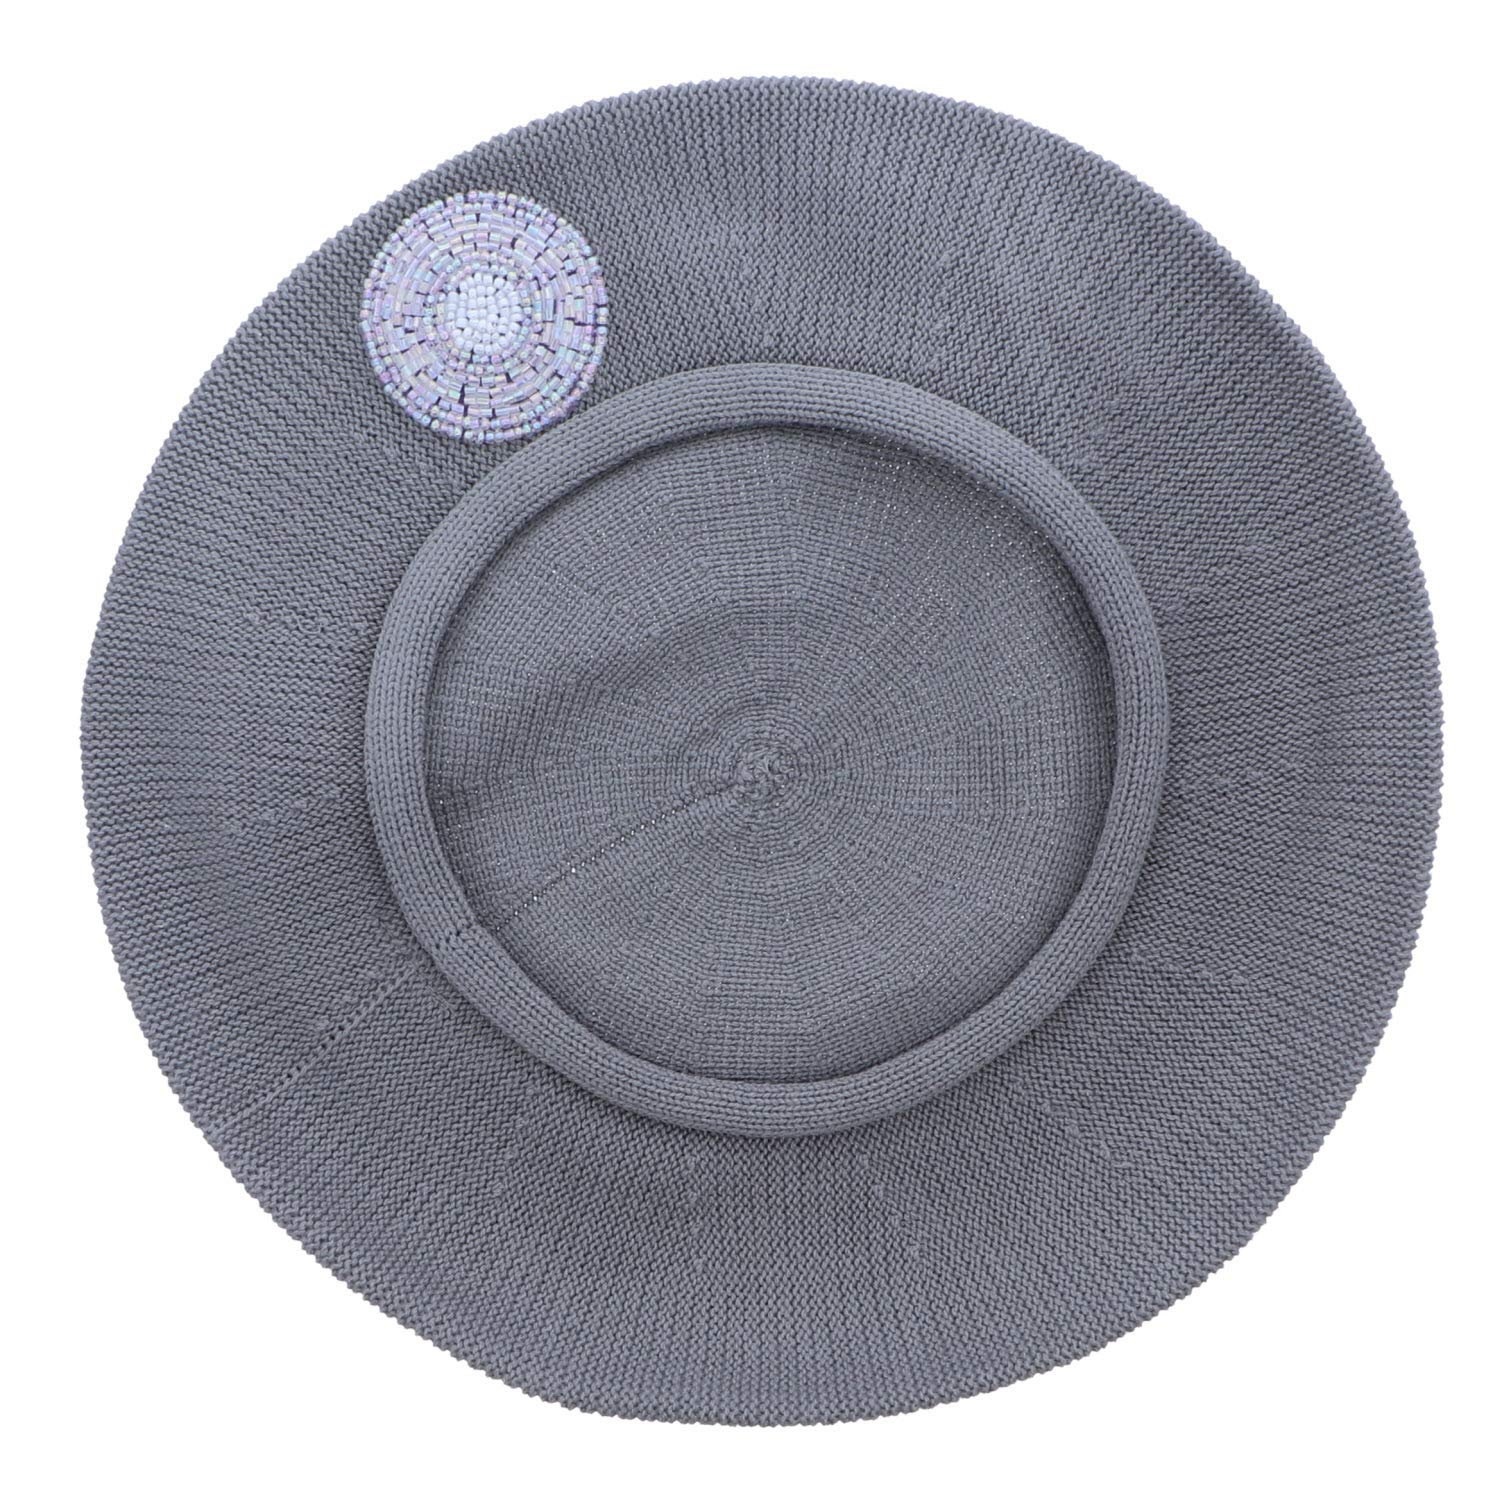 Beaded Lavender Circle on Beret for Women 100% Cotton-Grey